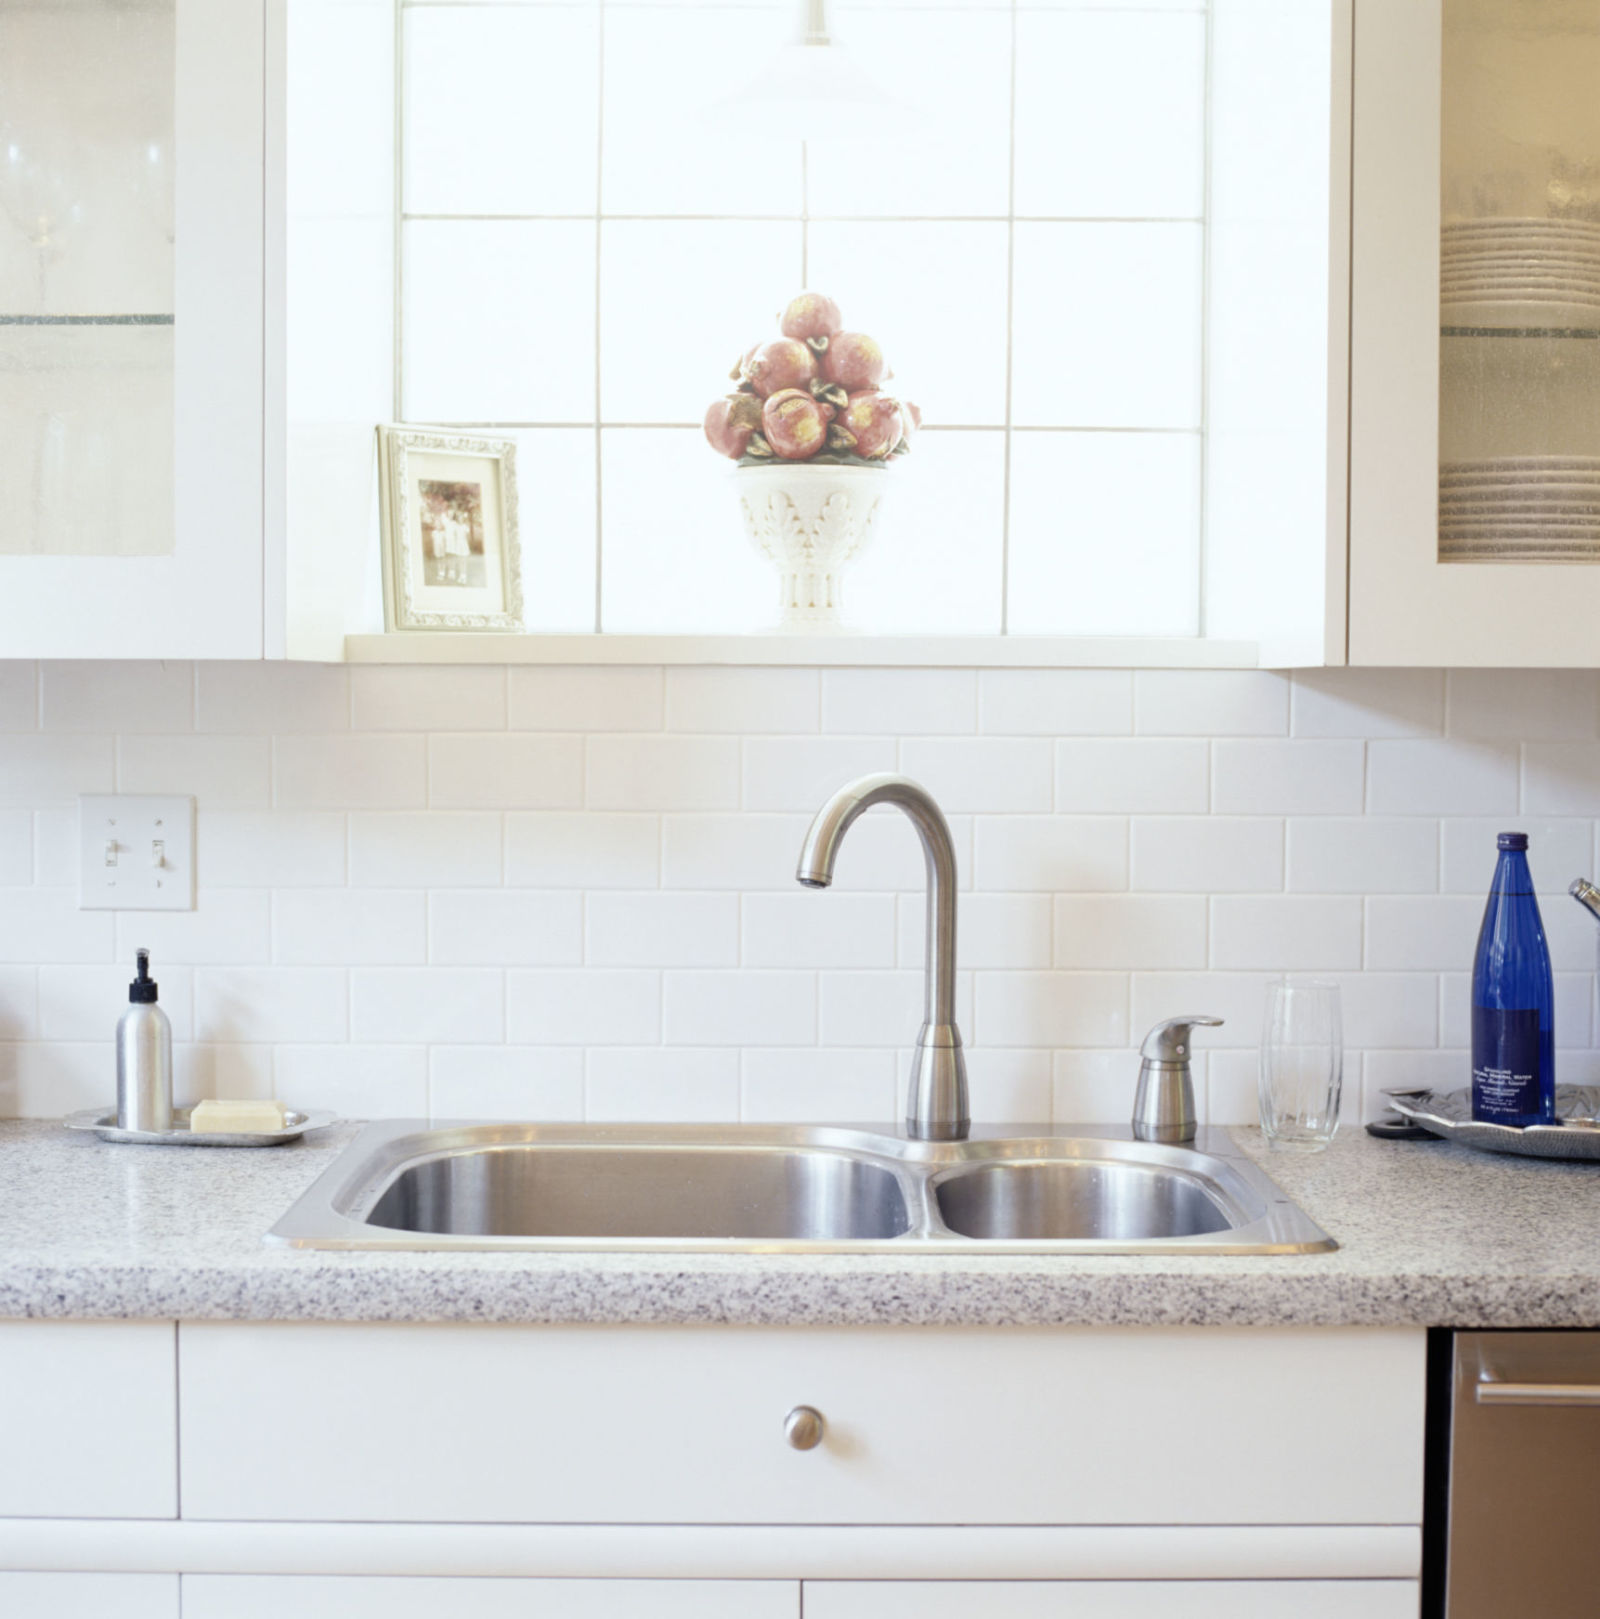 gallery-1429134498-kitchen-sink-cleaning-de